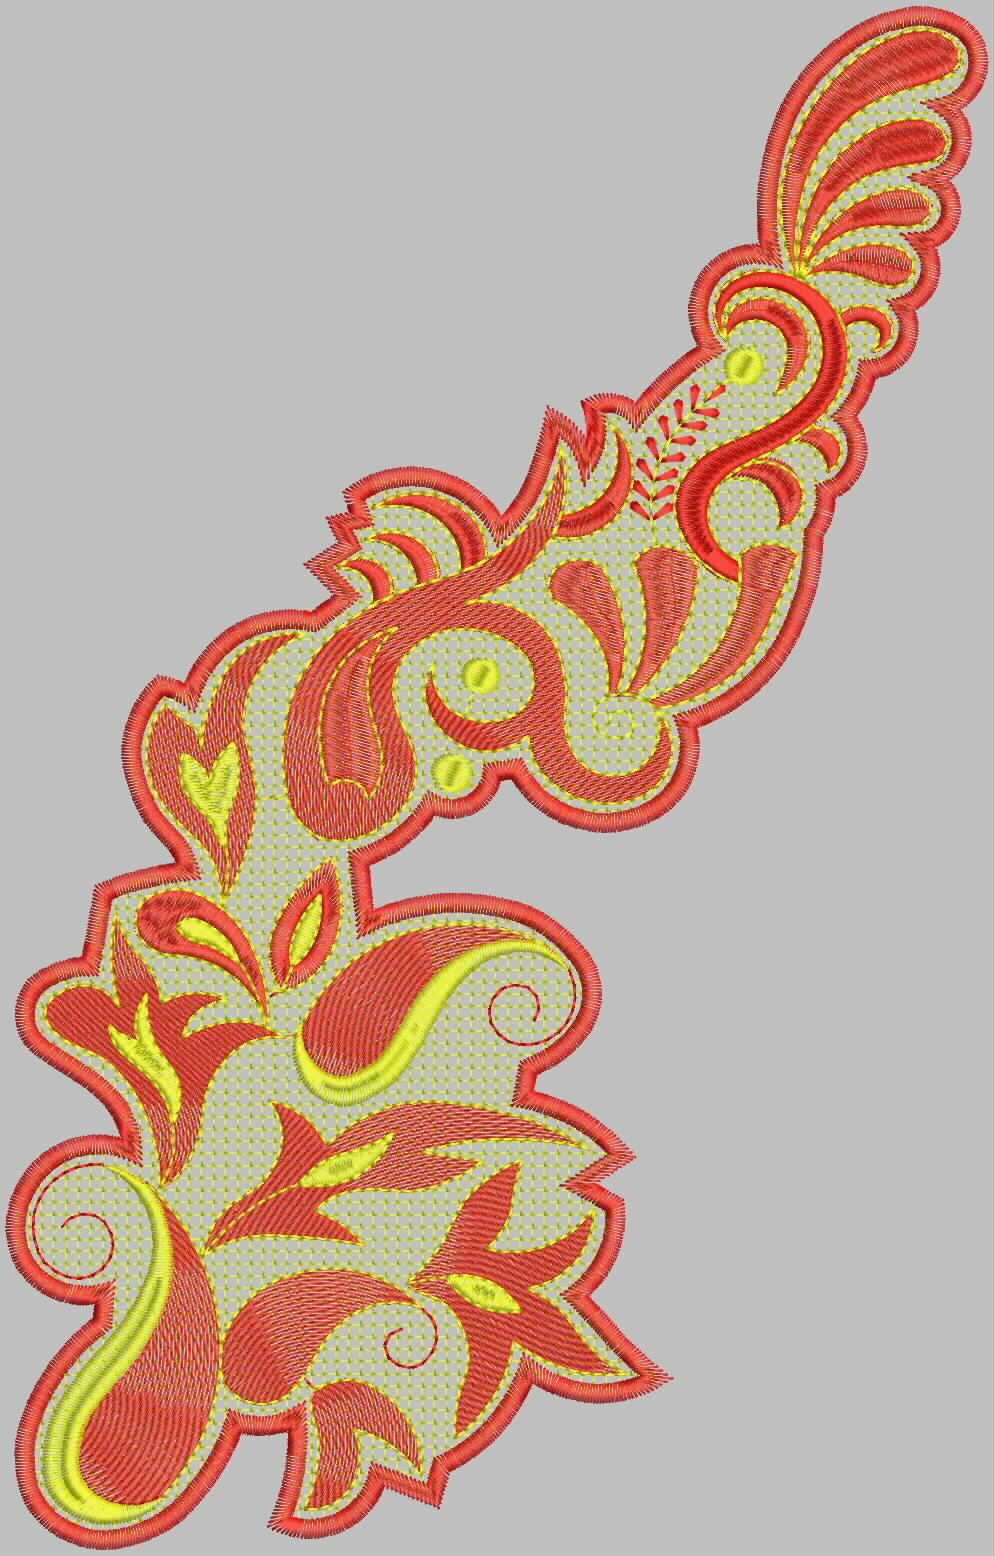 Embdesigntube Ready To Use Patch Embroidery Design- Latest Collection By Kishan